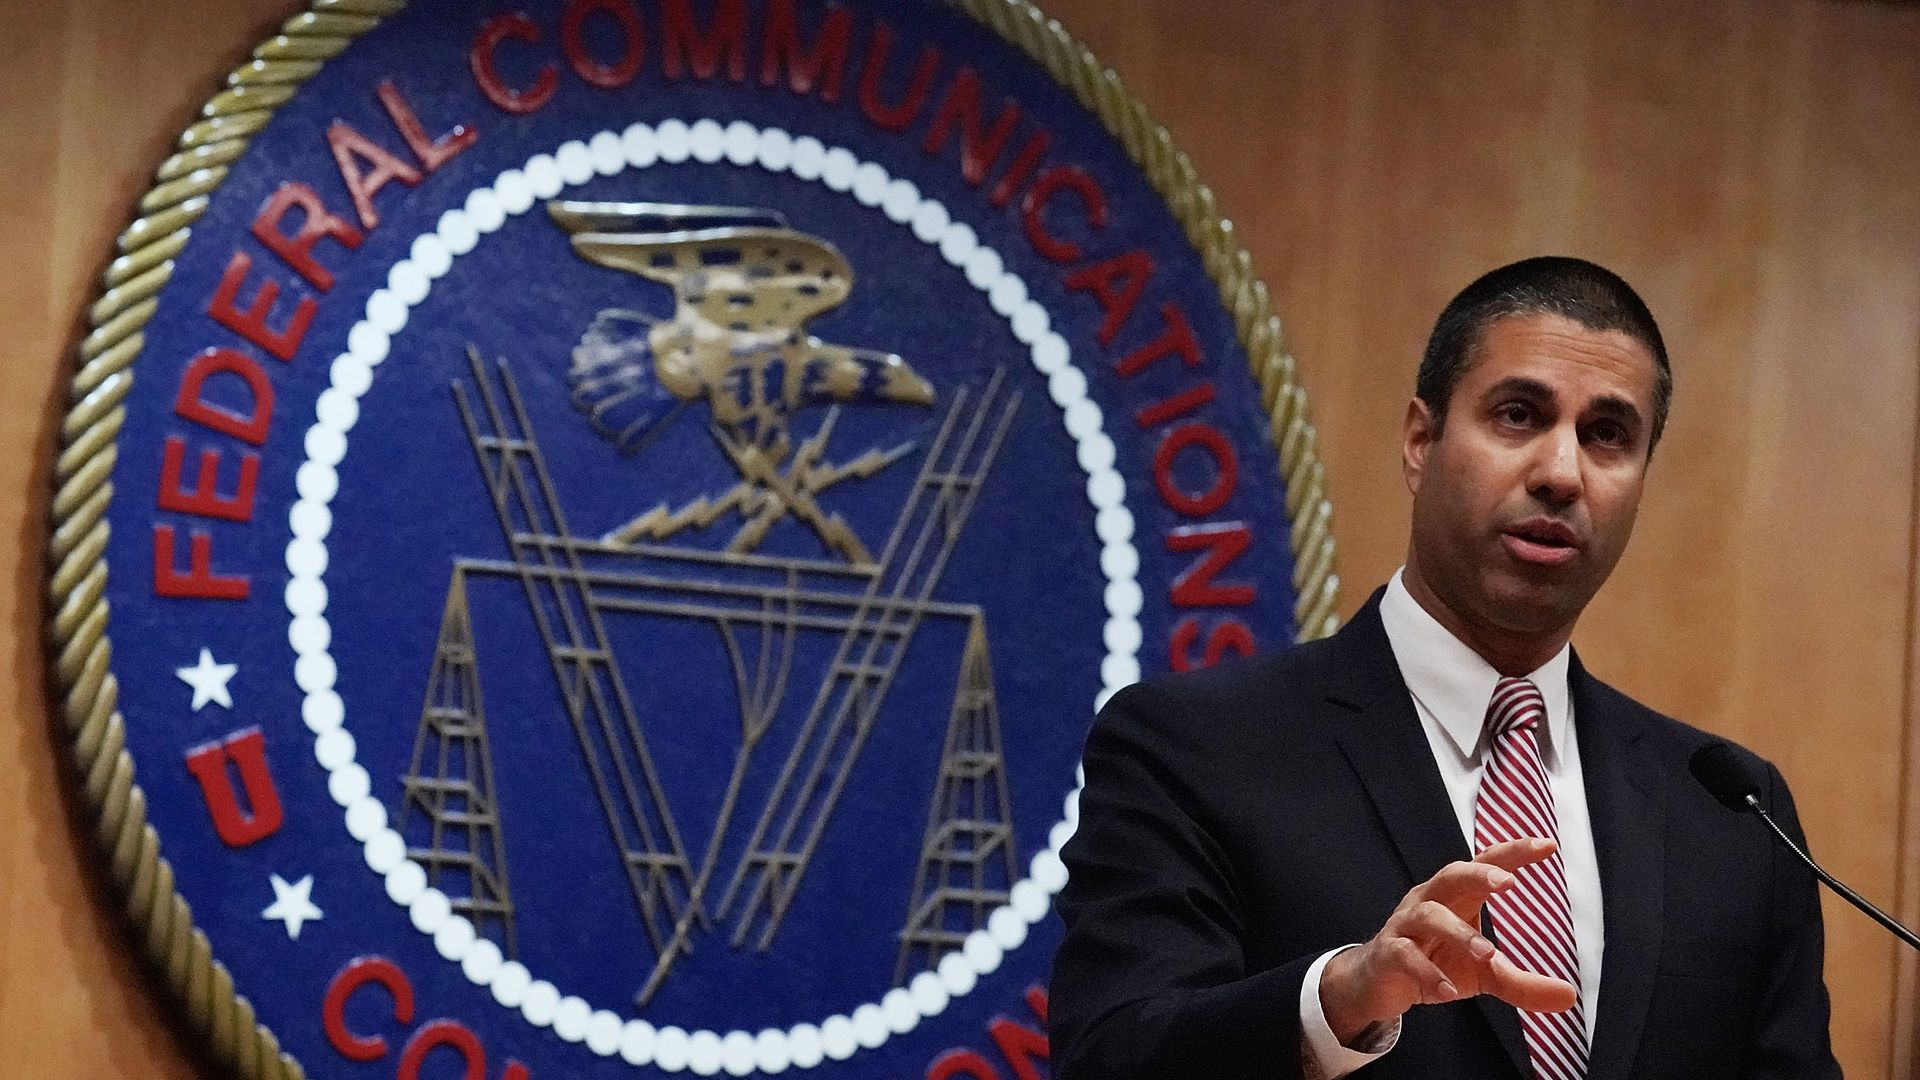 A photo of FCC Chairman Ajit Pai standing and speaking in front of the FCC logo.